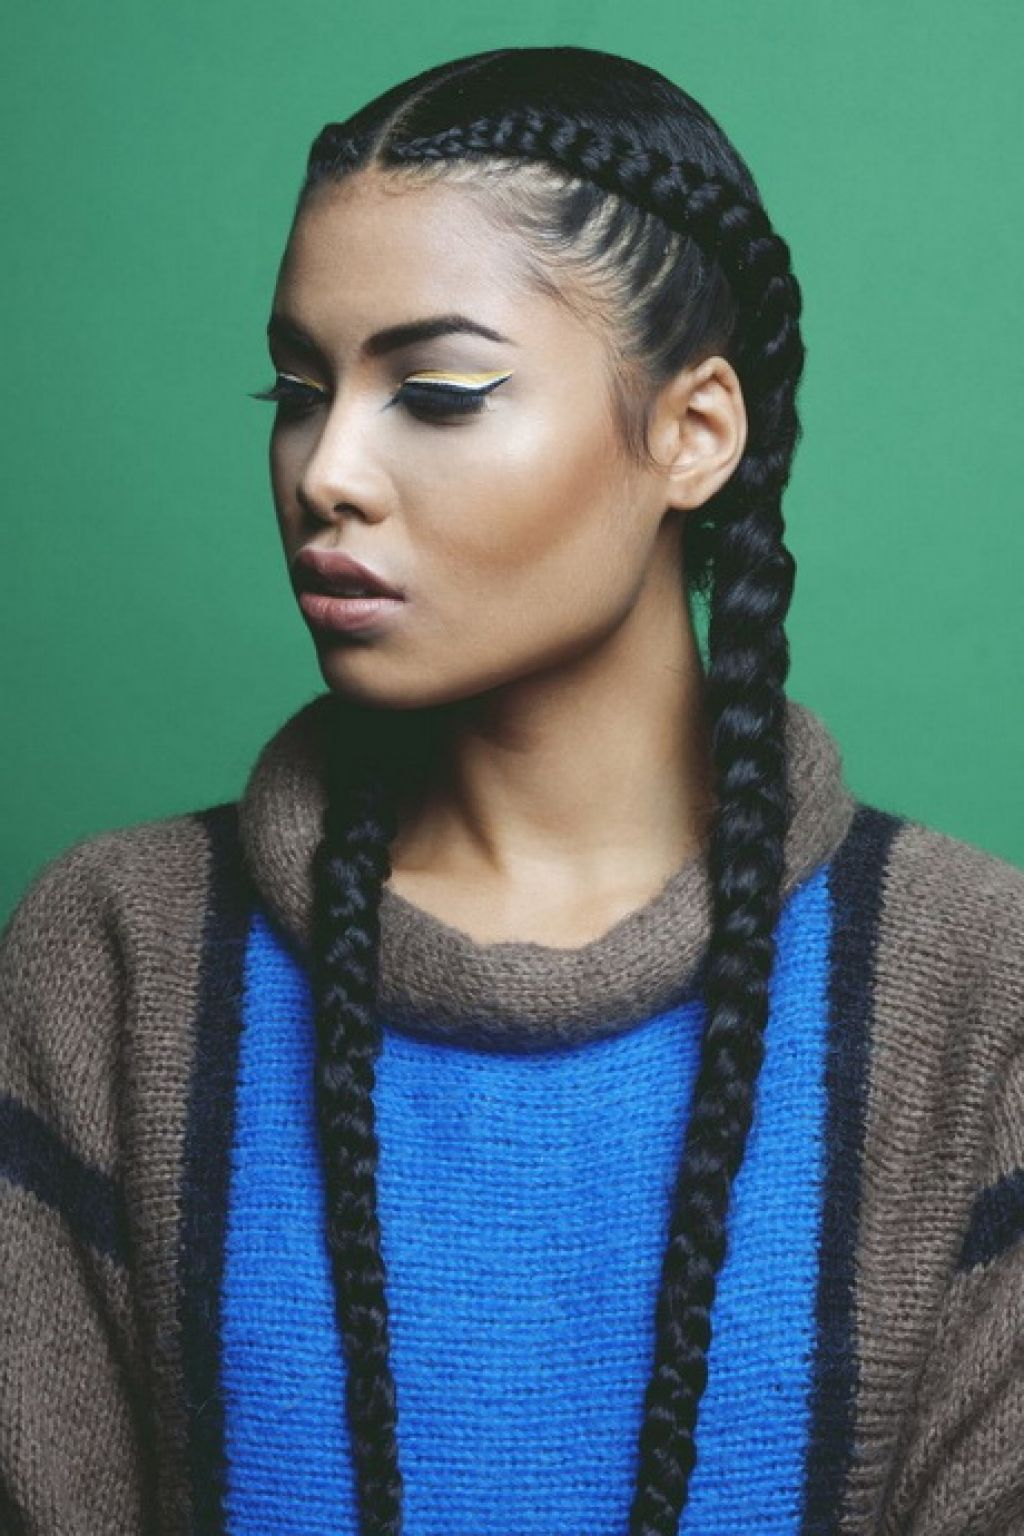 French Braid Hairstyles For Black Women Diy Hairstyles And Braid